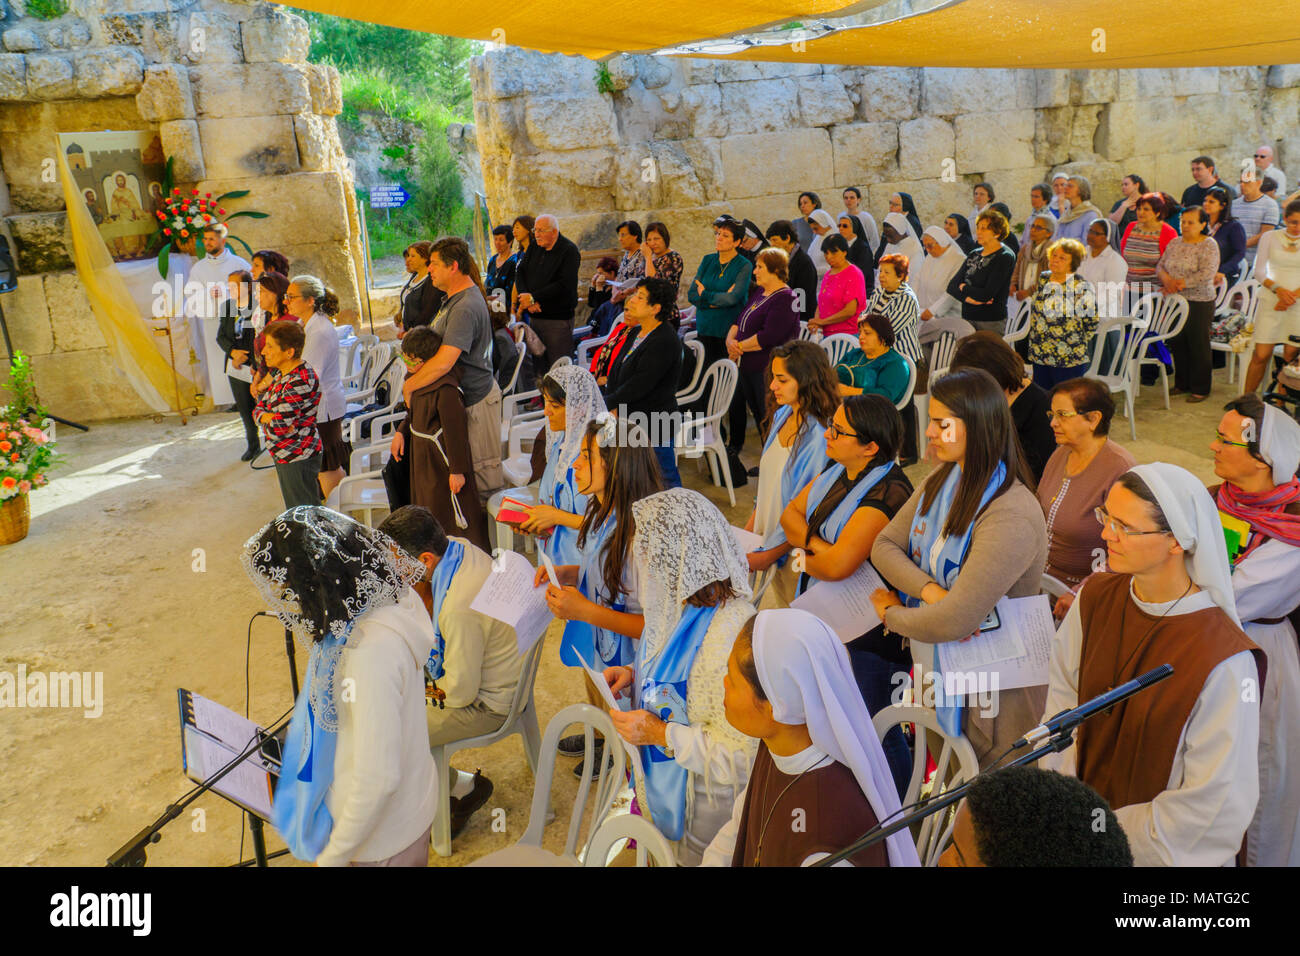 EMMAUS, ISRAEL - APRIL 2, 2018: Easter Monday Solemn Mass at the basilica of Emmaus-Nicopolis, with the Nuns and prayers, Israel. Commemorating Jesus  Stock Photo